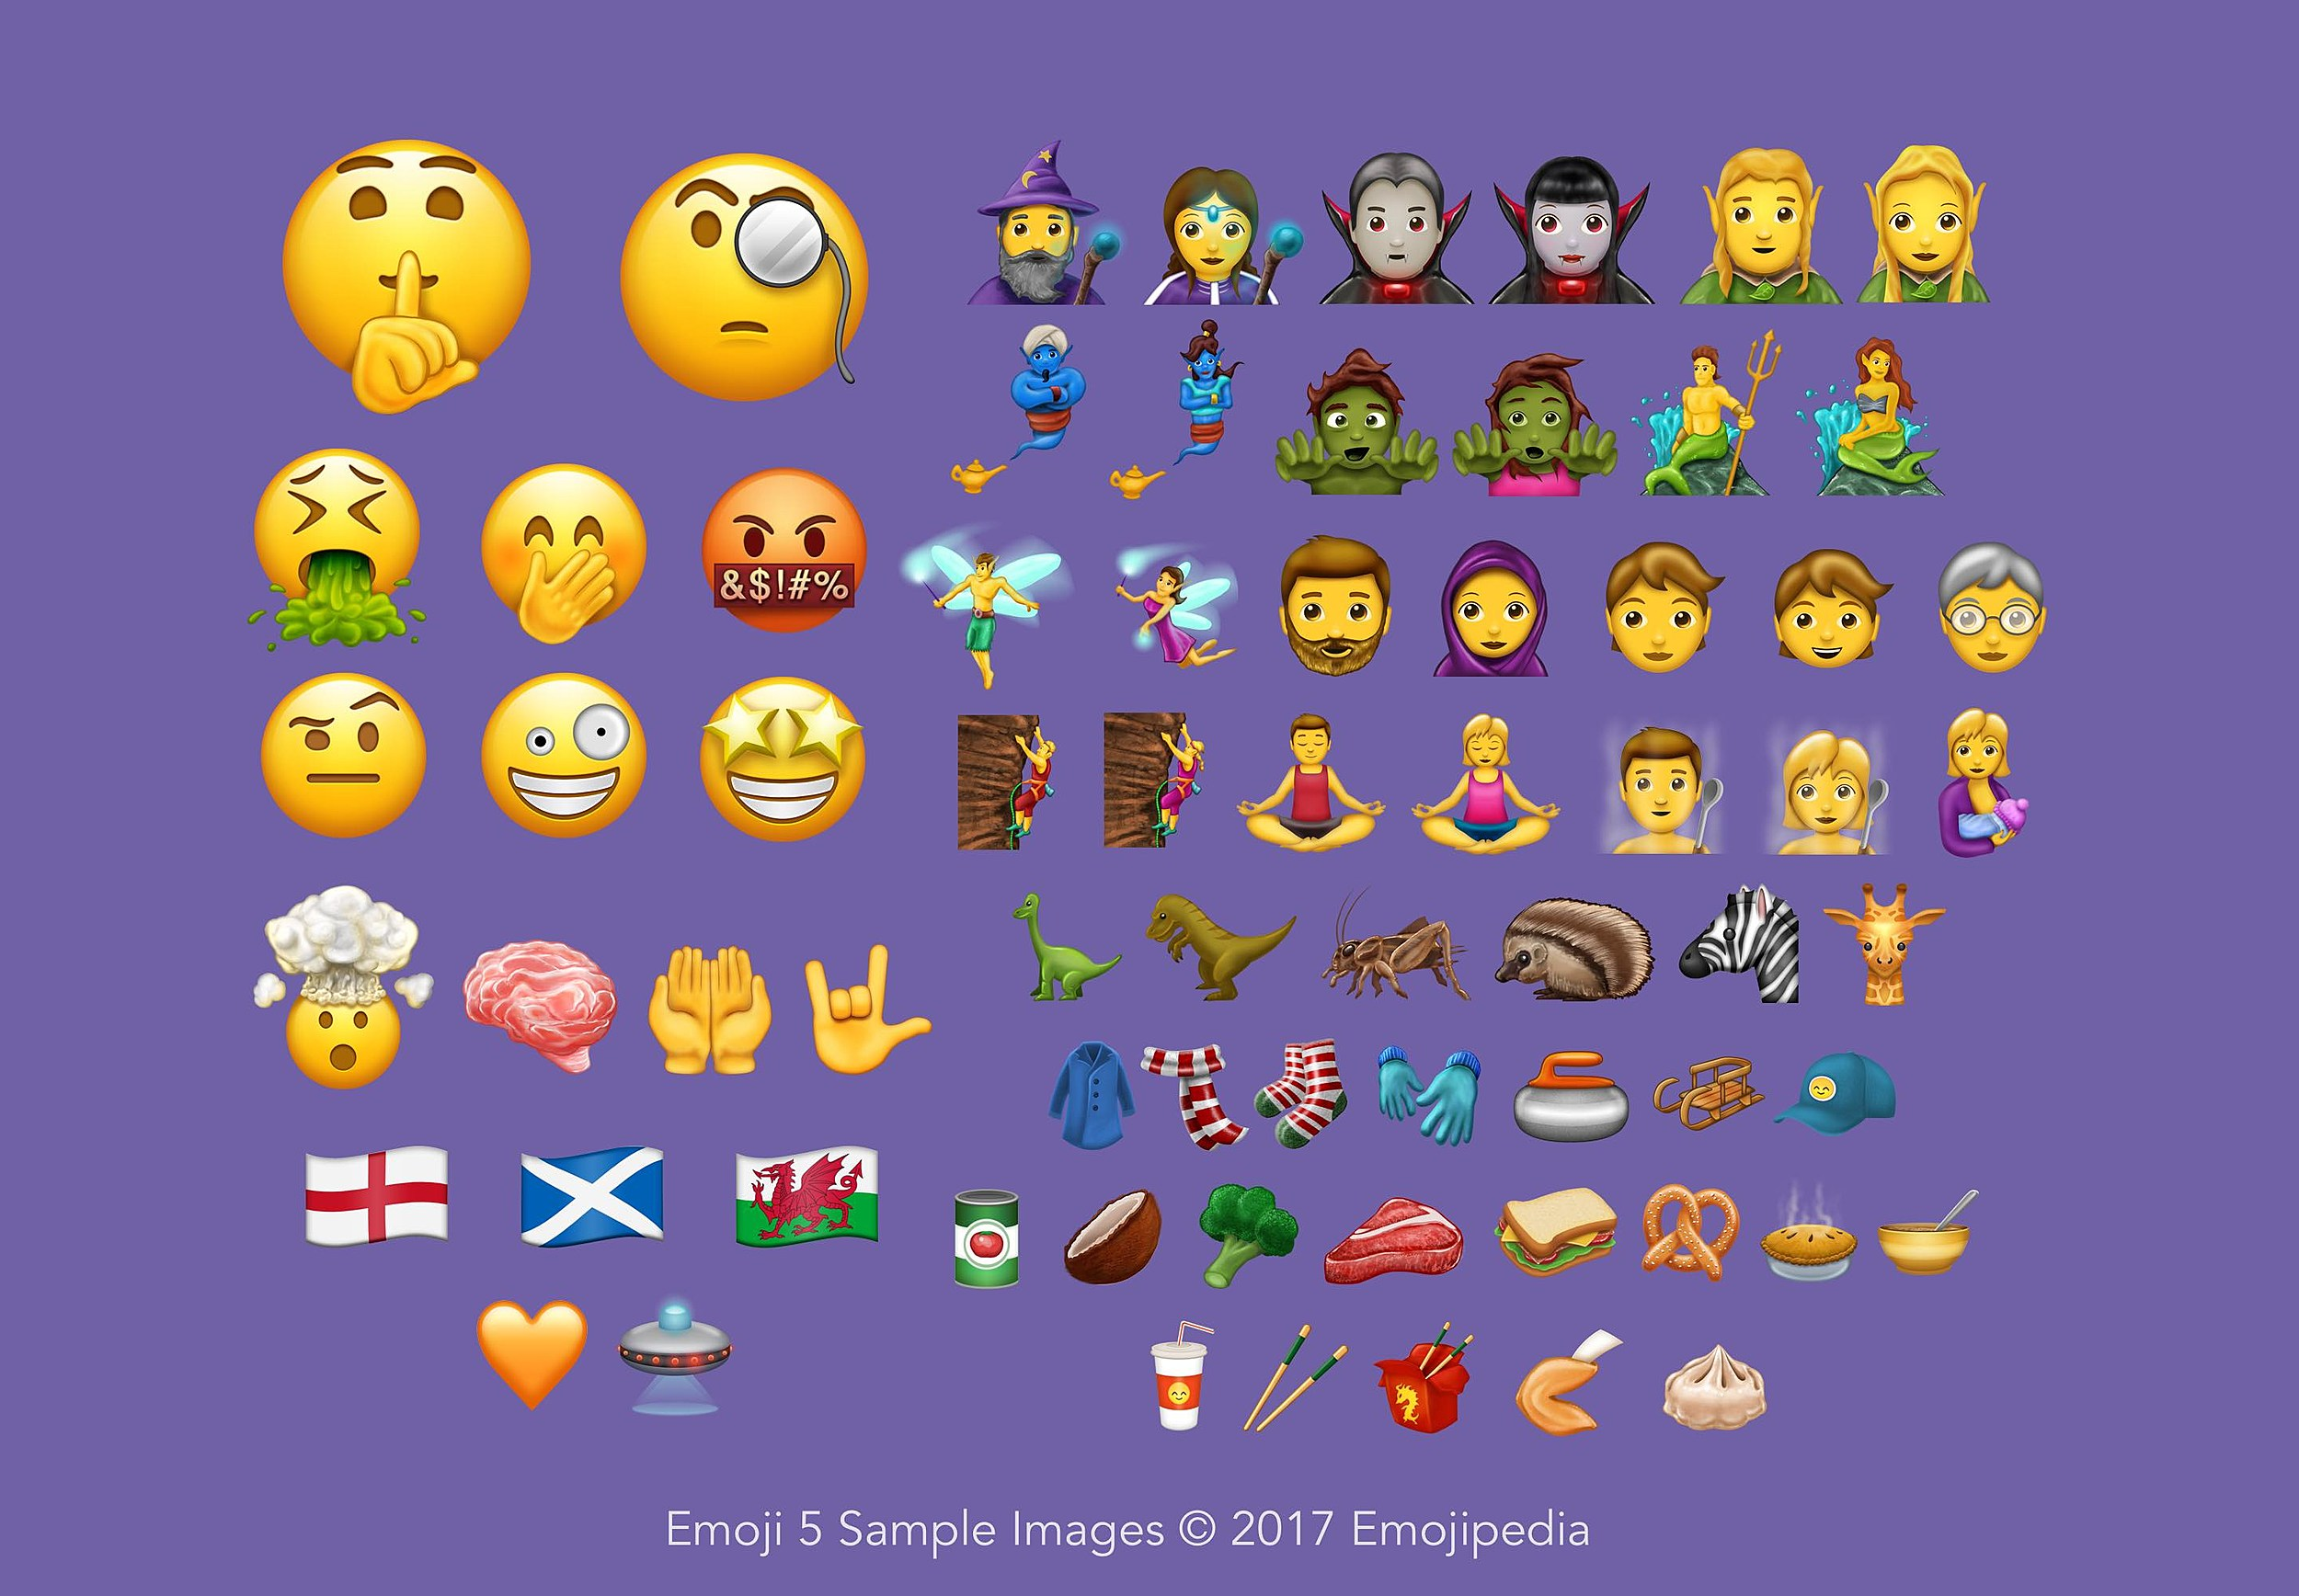 emoji-5-sample-images-overview-emojipedia-2017-1